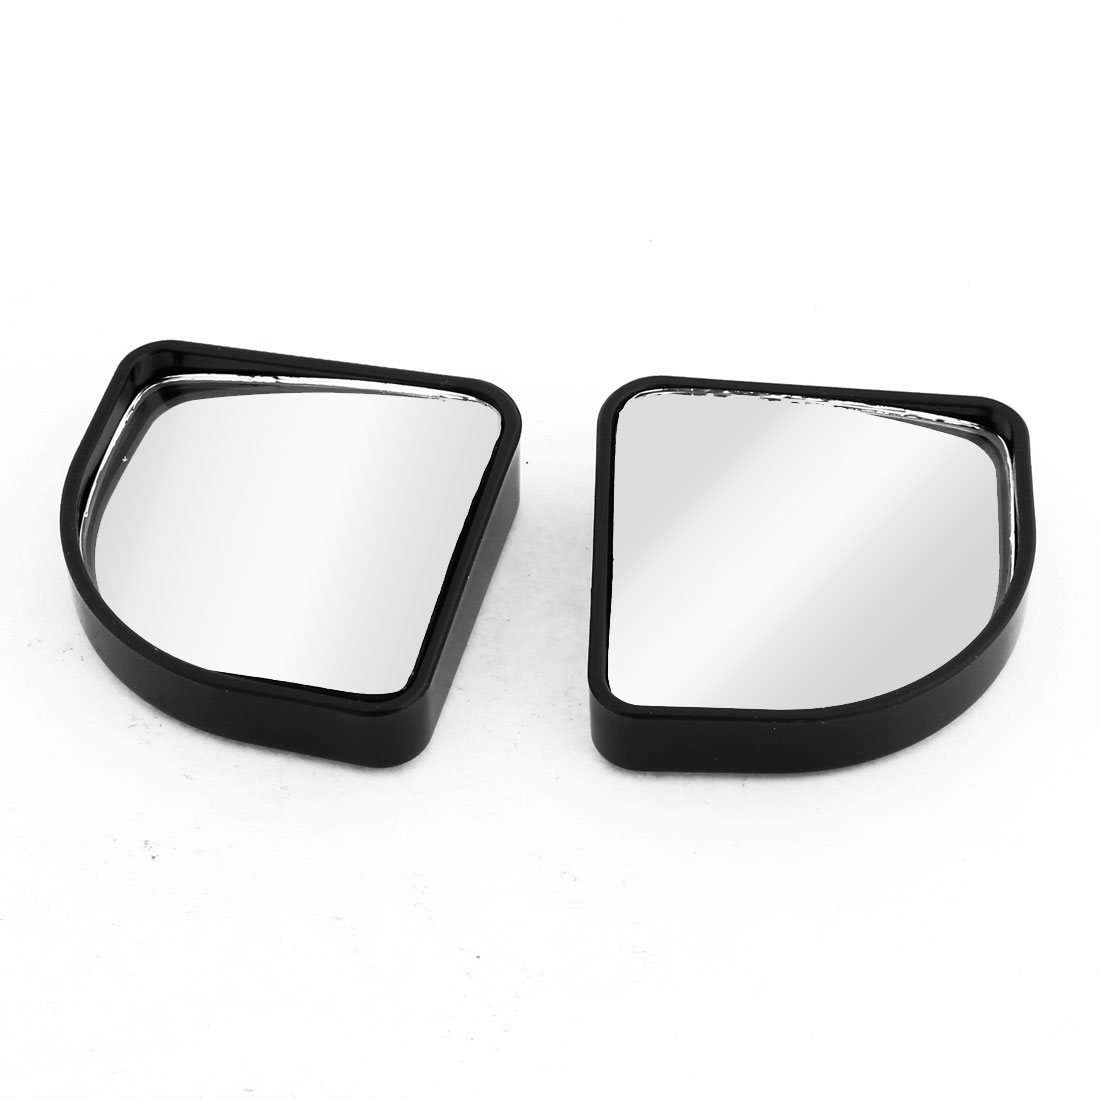 Pair Car Black Plastic Shell Side Convex Rearview Blind Spot Mirror